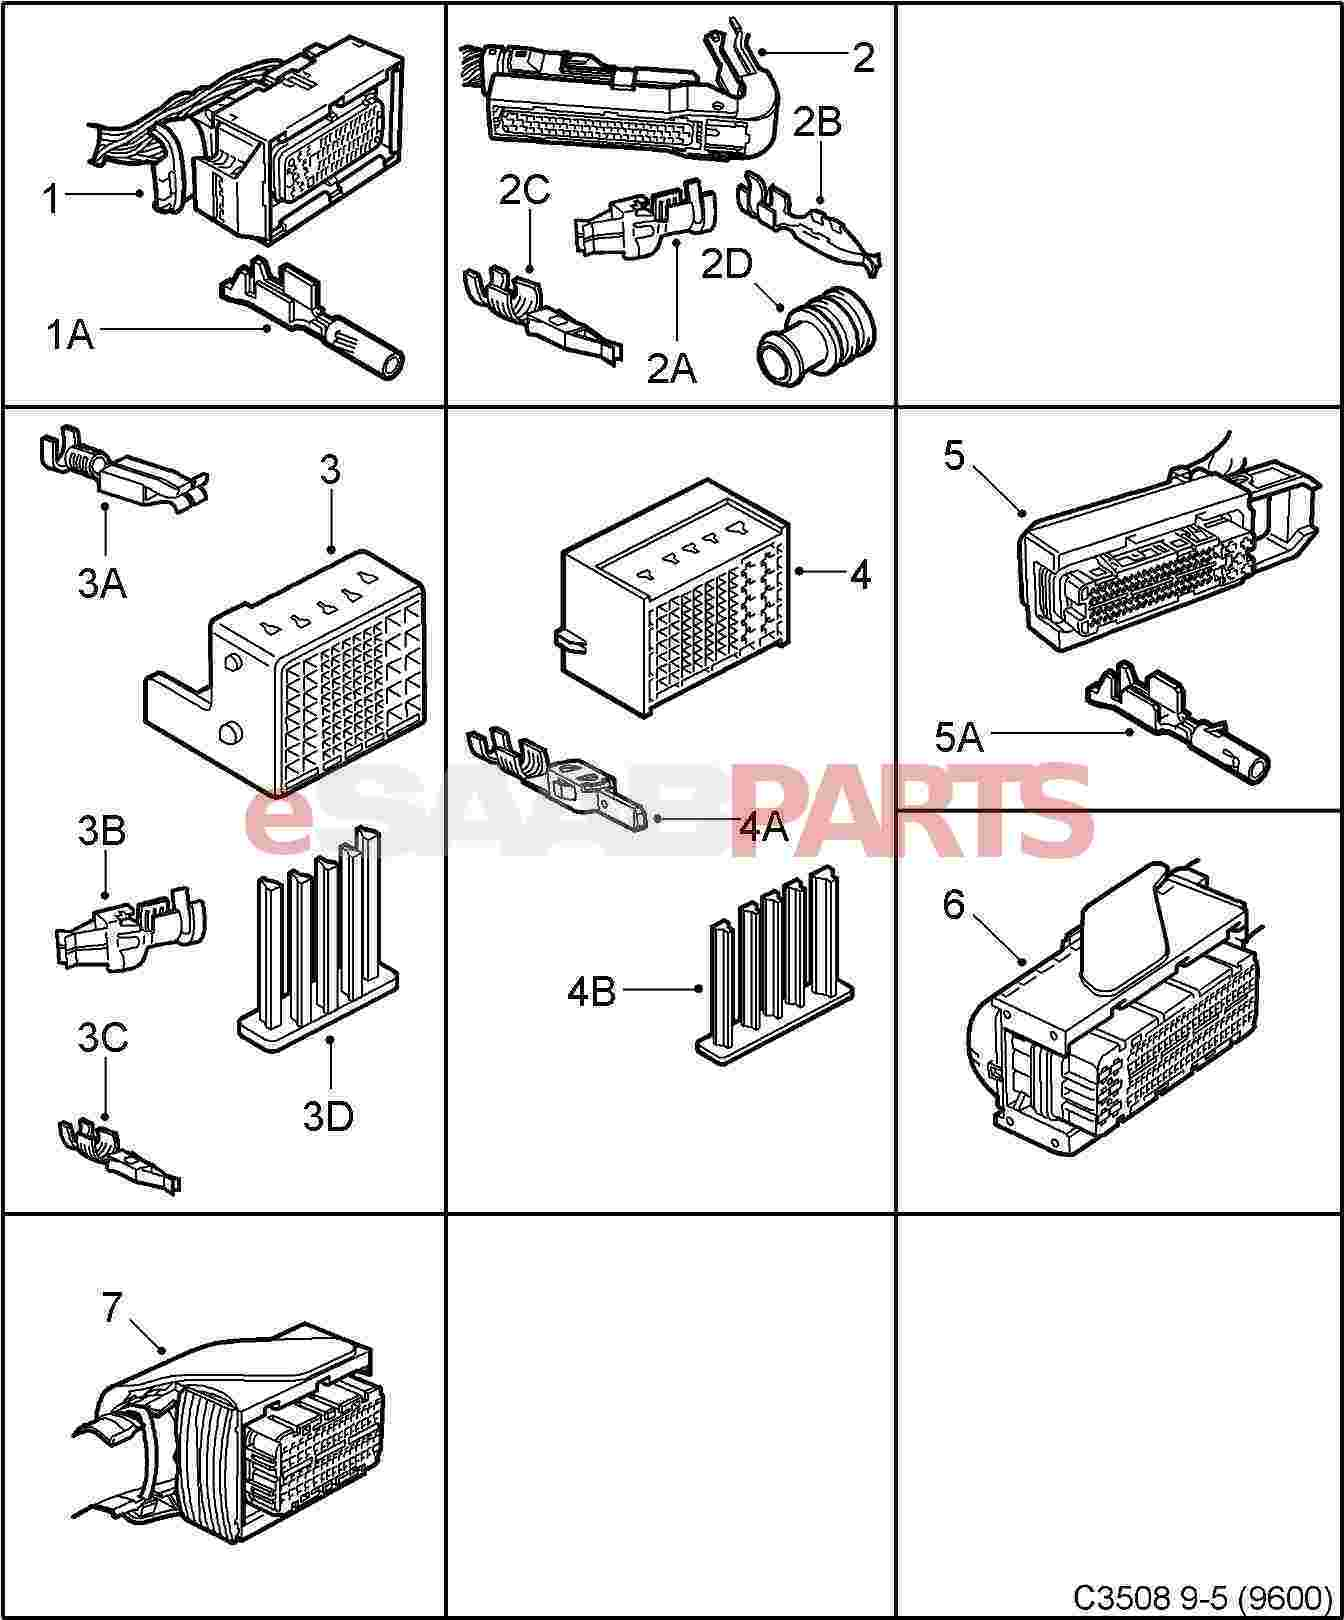 eSaabParts.com - Saab 9-5 (9600) > Electrical: Connector Parts > Connectors:  All Types > Connector housing etc - 50-pin - 110-pin